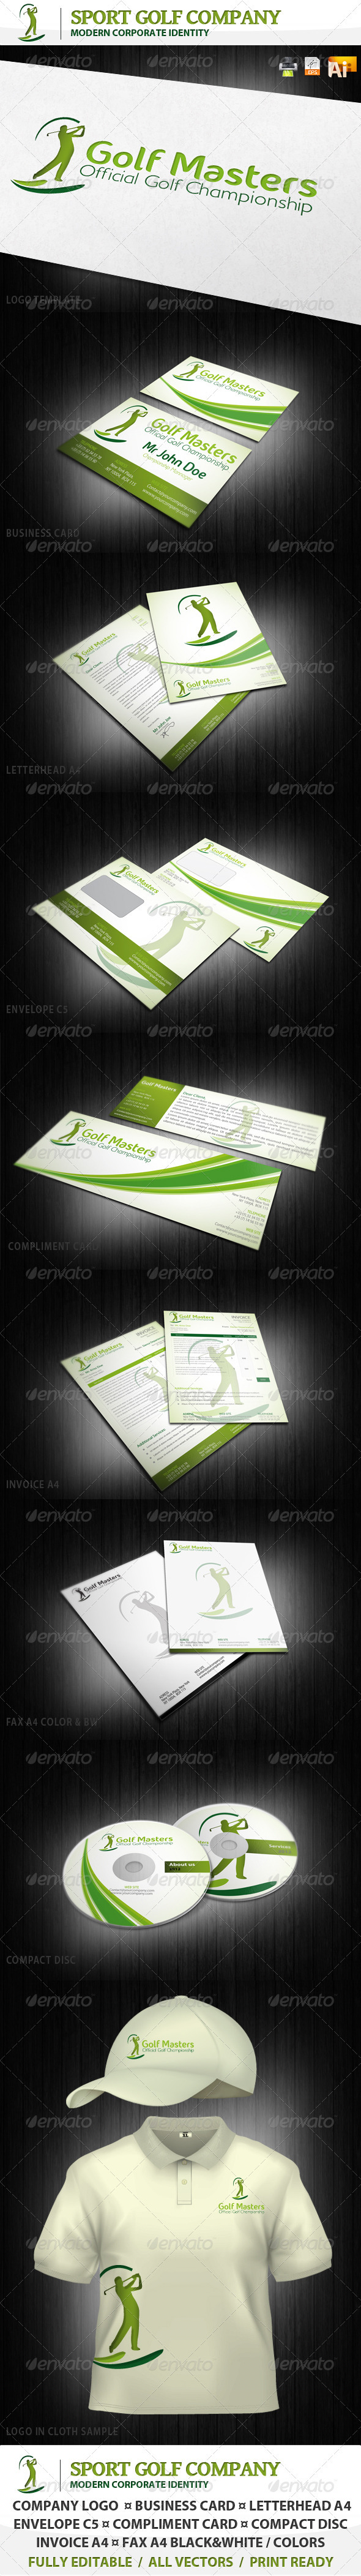 GraphicRiver Sport Golf Company Corporate Identity & Logo 1205288